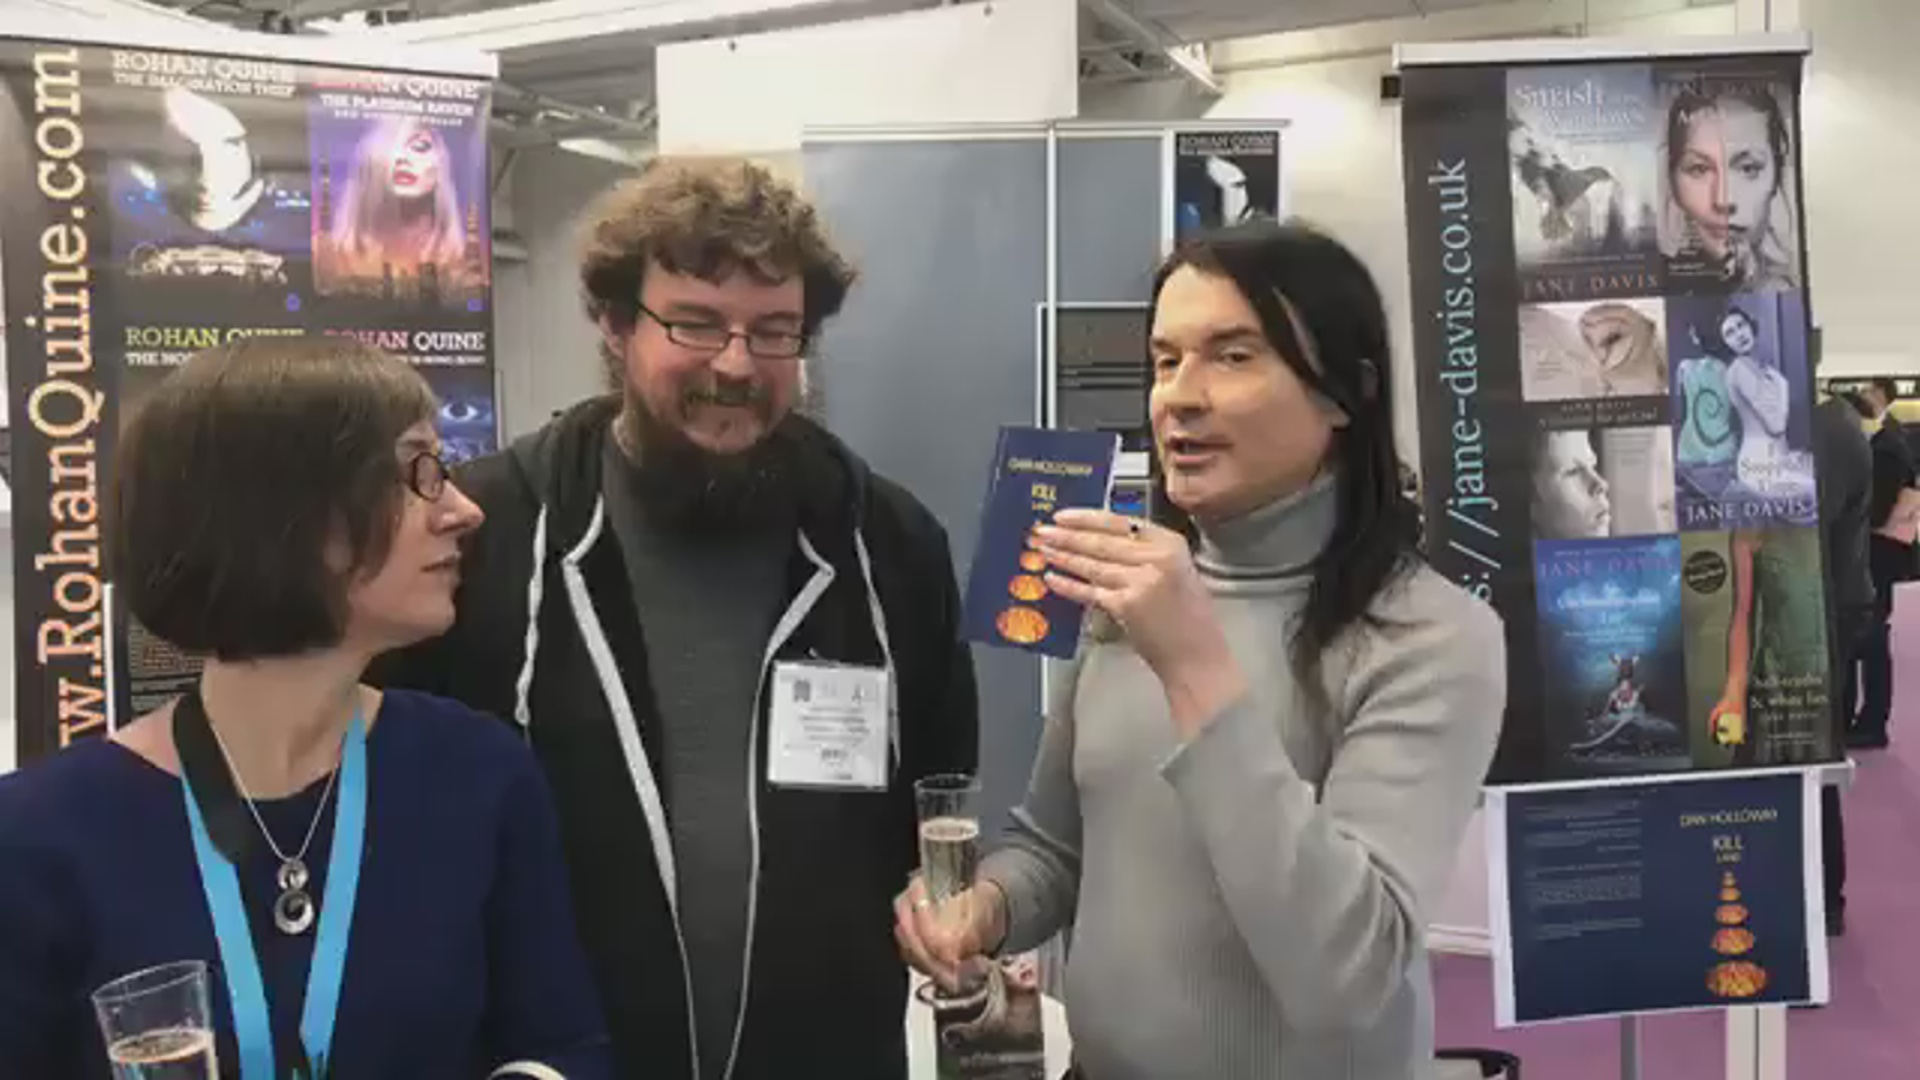 LBF18 launch of Rohan Quine's 'The Beasts of Electra Drive', Dan Holloway's 'Kill Land' & Jane Davis's 'Smash all the Windows' - 3